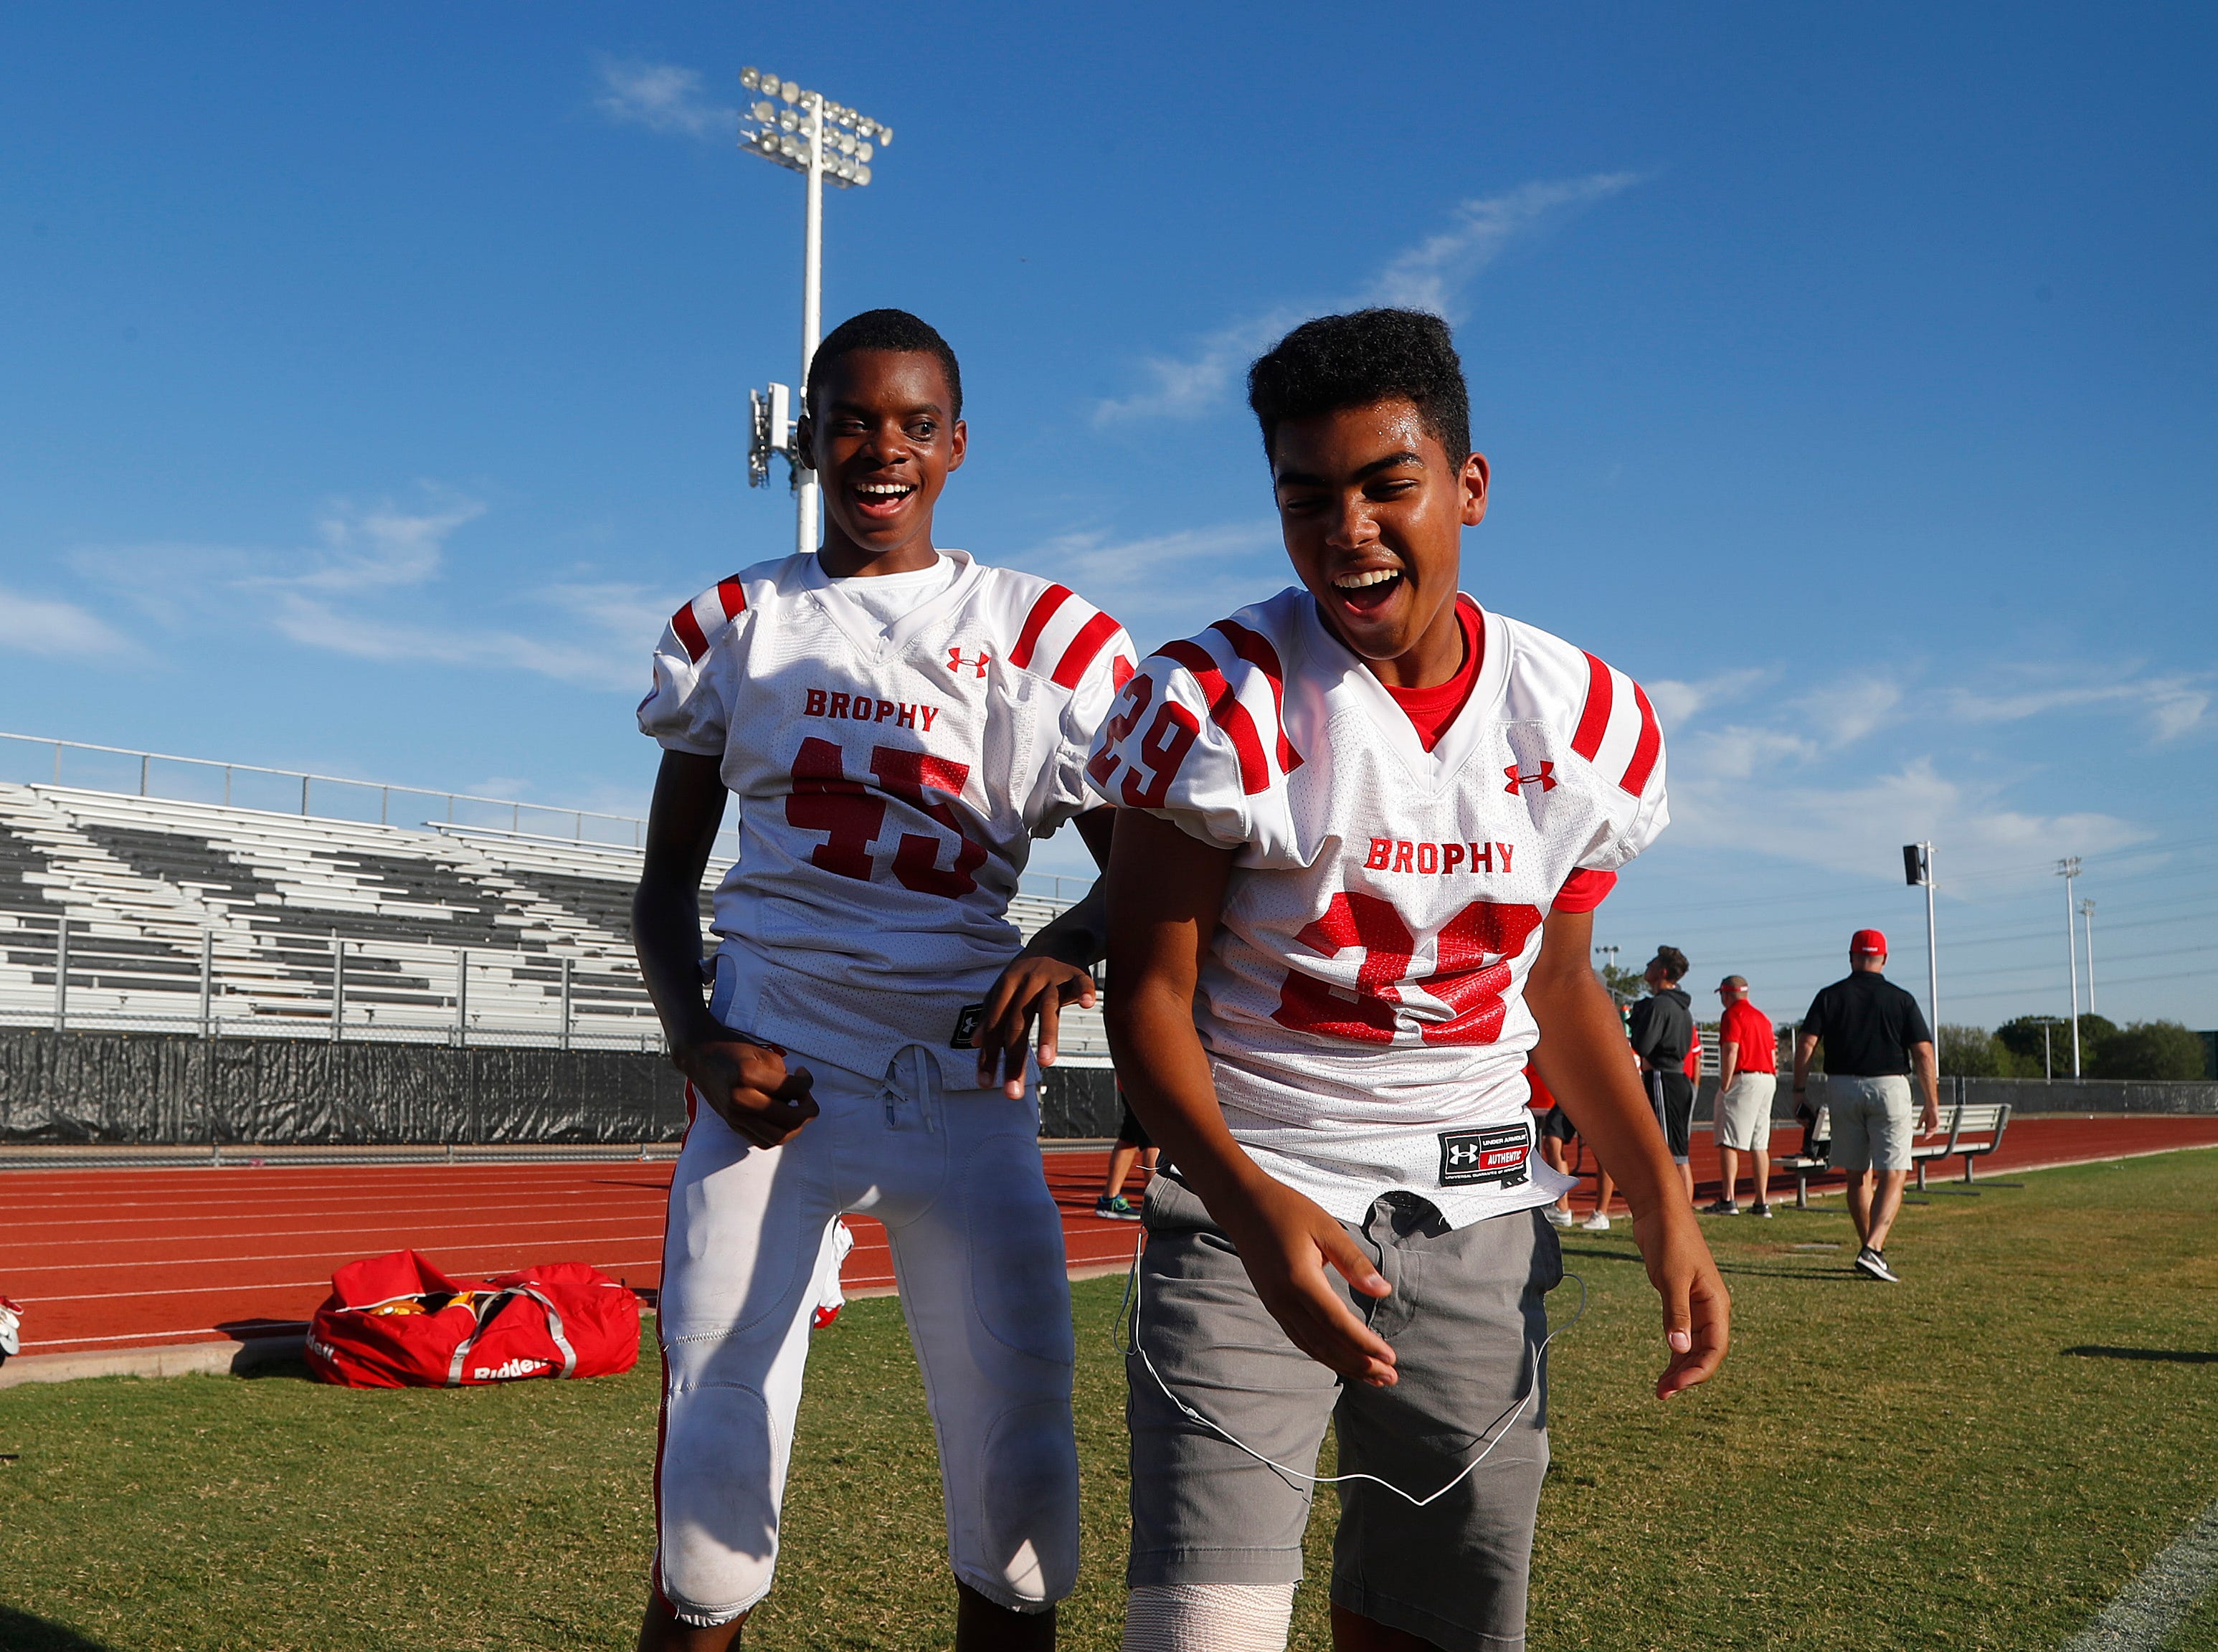 Brophy's Adonis Watt (L) knocks away a pass intended for his teammate Carty Shoen as they have fun before a game against Highland at Highland High School in Gilbert, Ariz. on Aug. 30, 2018.